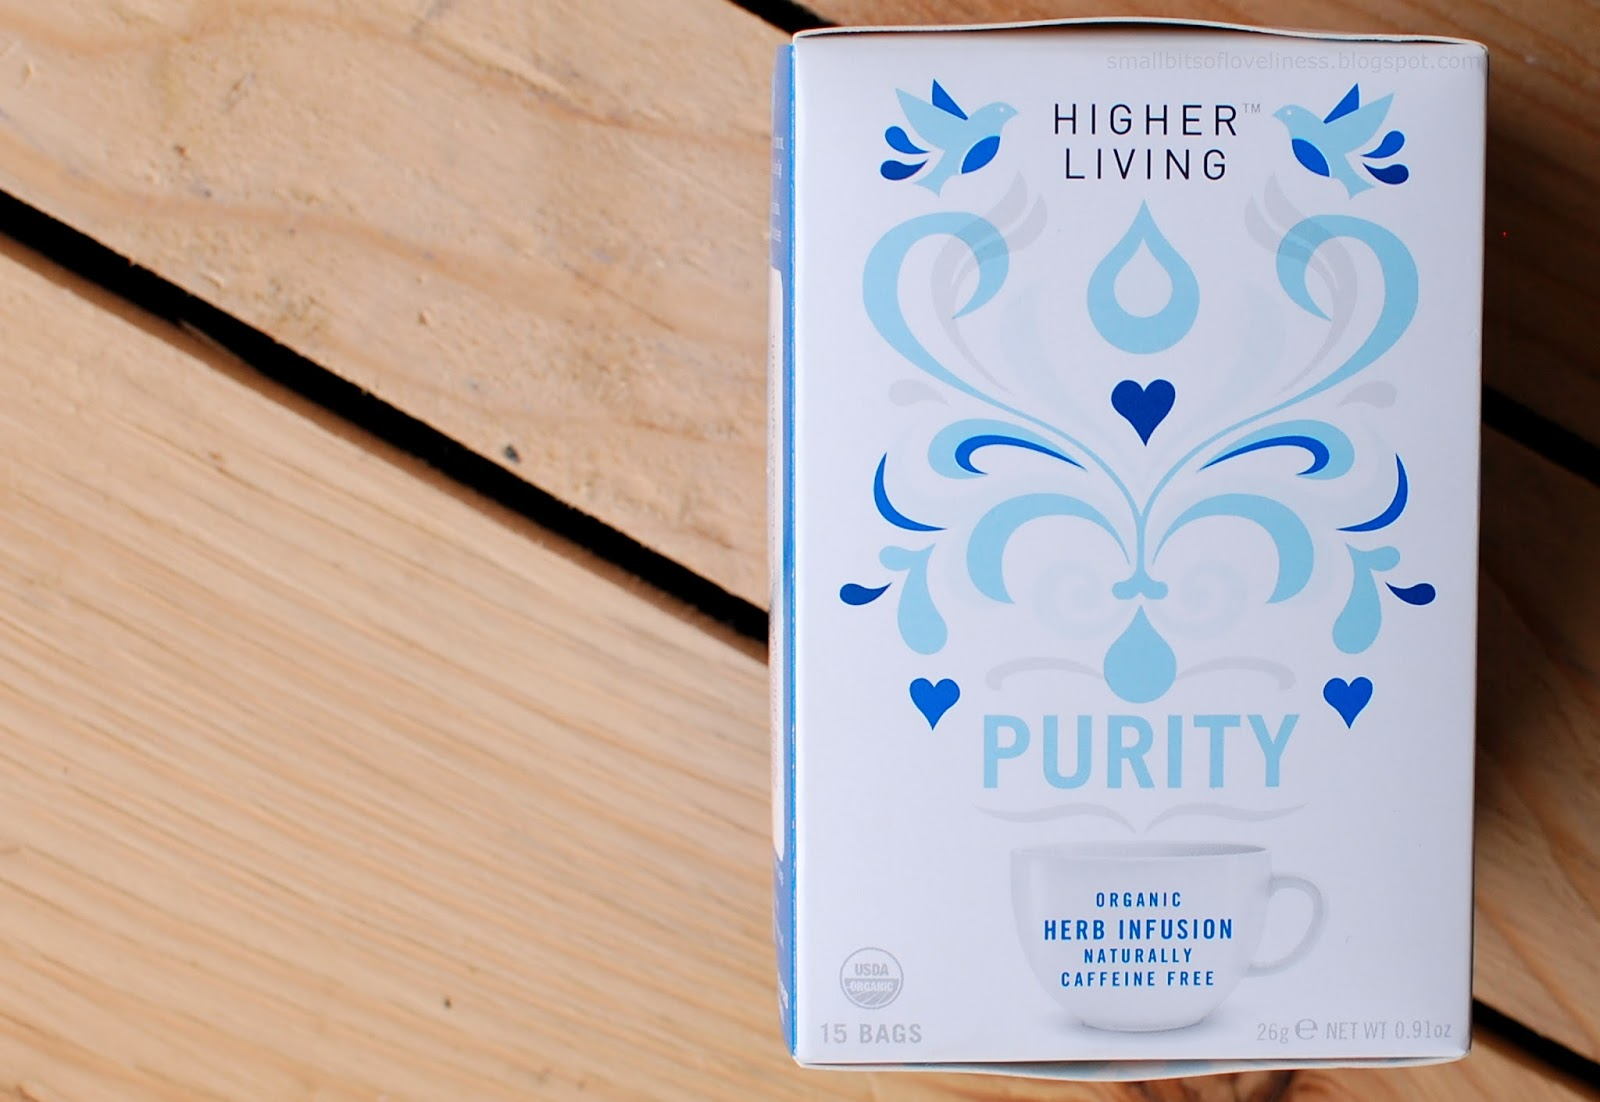 Higher Living Puritiy Organic Herb Infusion Tea